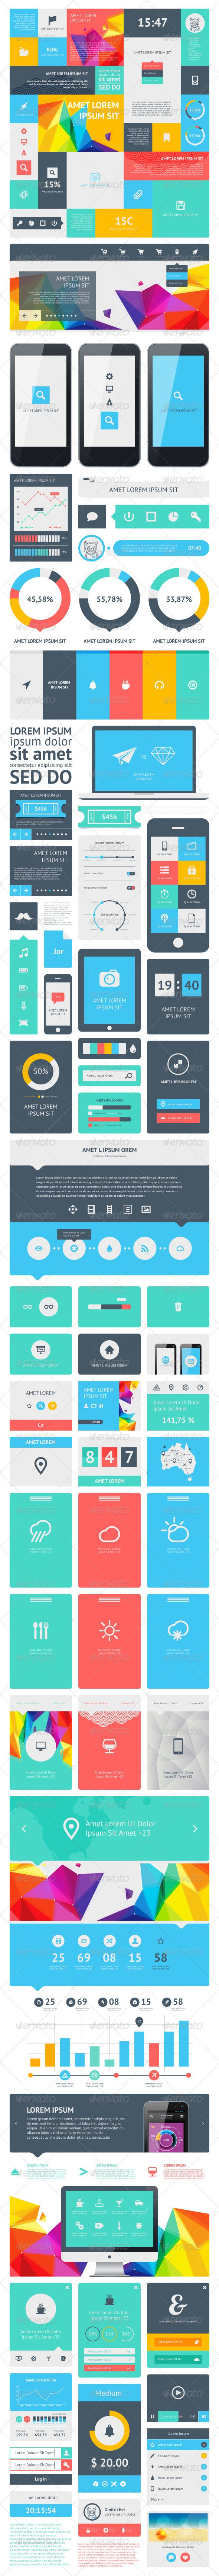 UI Set Components Featuring Flat Design - GraphicRiver Item for Sale